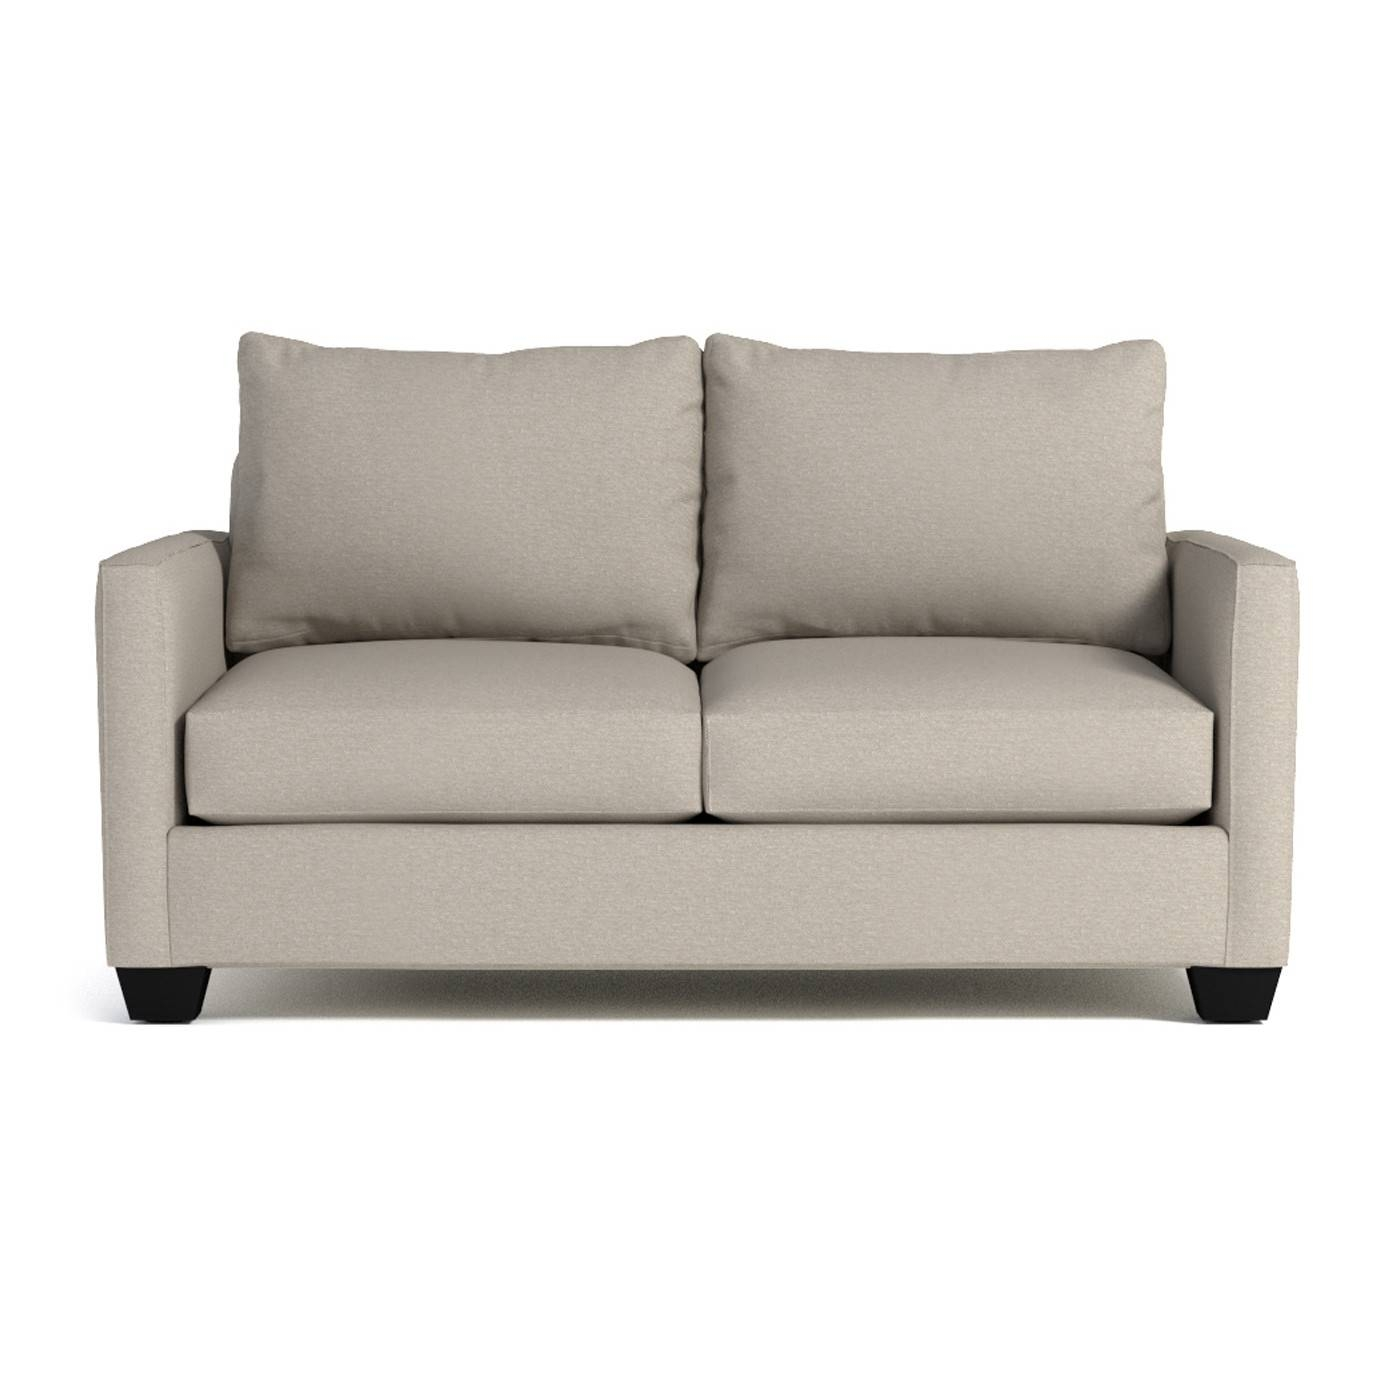 Most Comfortable Couch 2017 Part - 38: Most Comfortable Sofa You Must Apply For Modern Room Design With Comfortable  Sofas And Chairs (